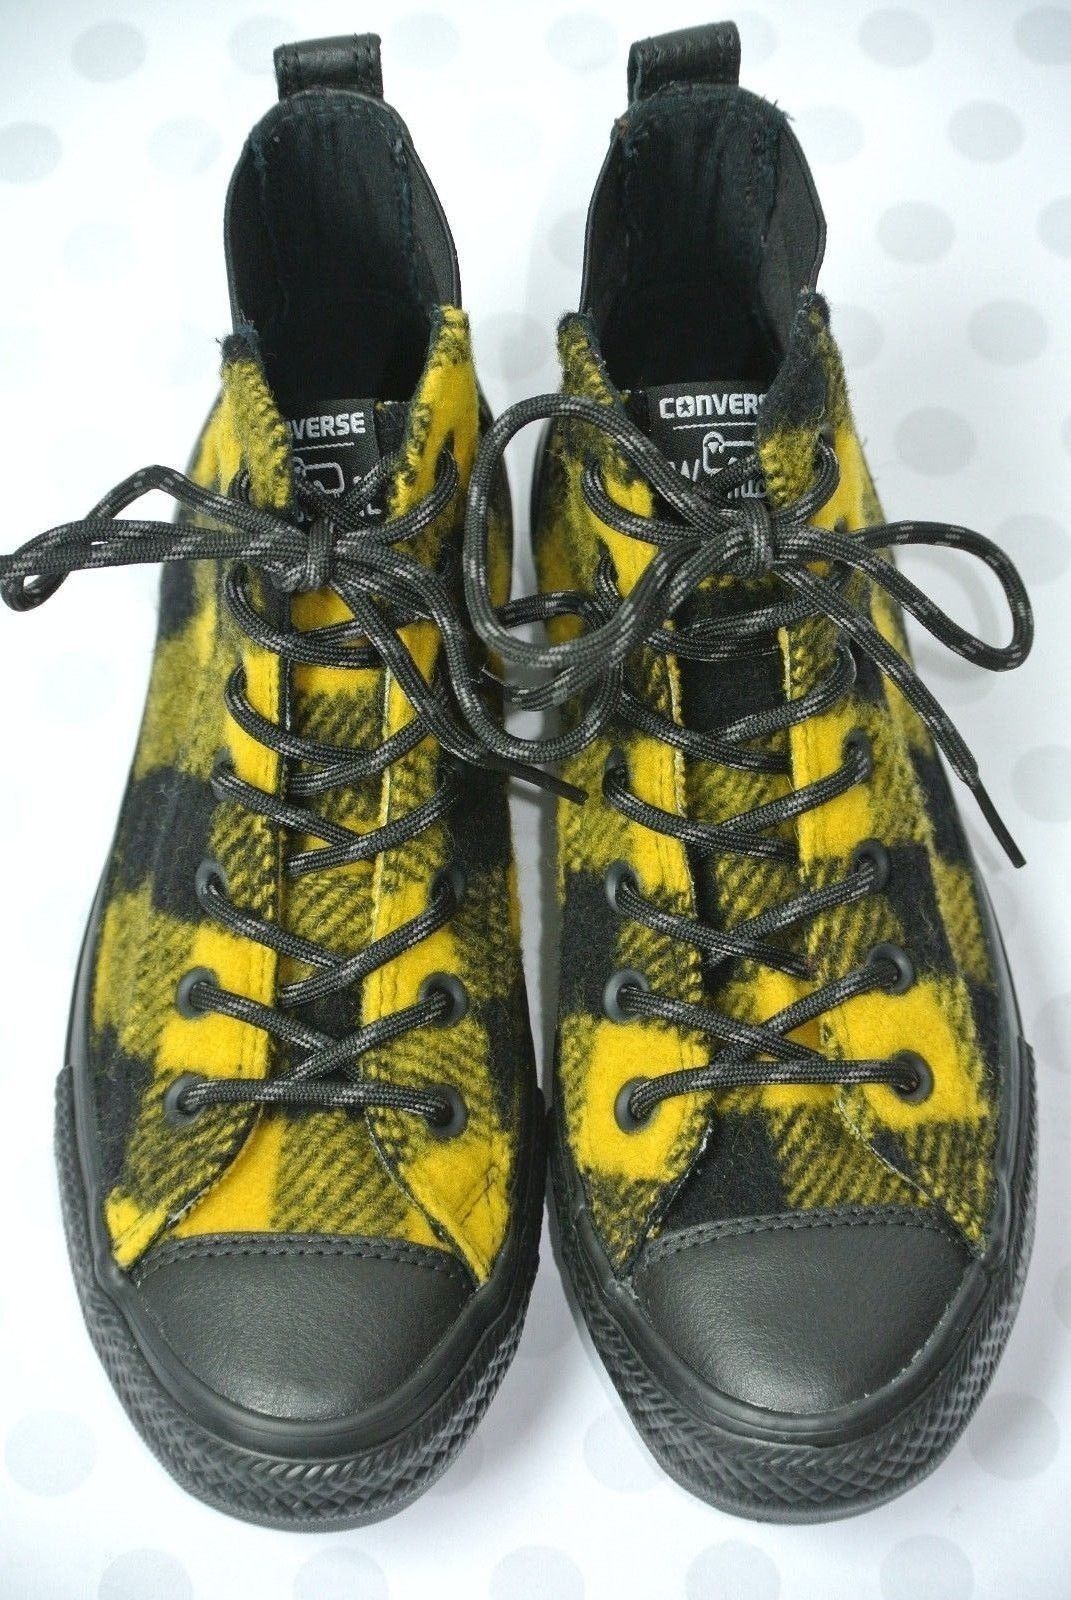 NEW Converse Chelsea Woolrich Womens Sz 7.5 M Black Yellow Hi Top Boots Shoes